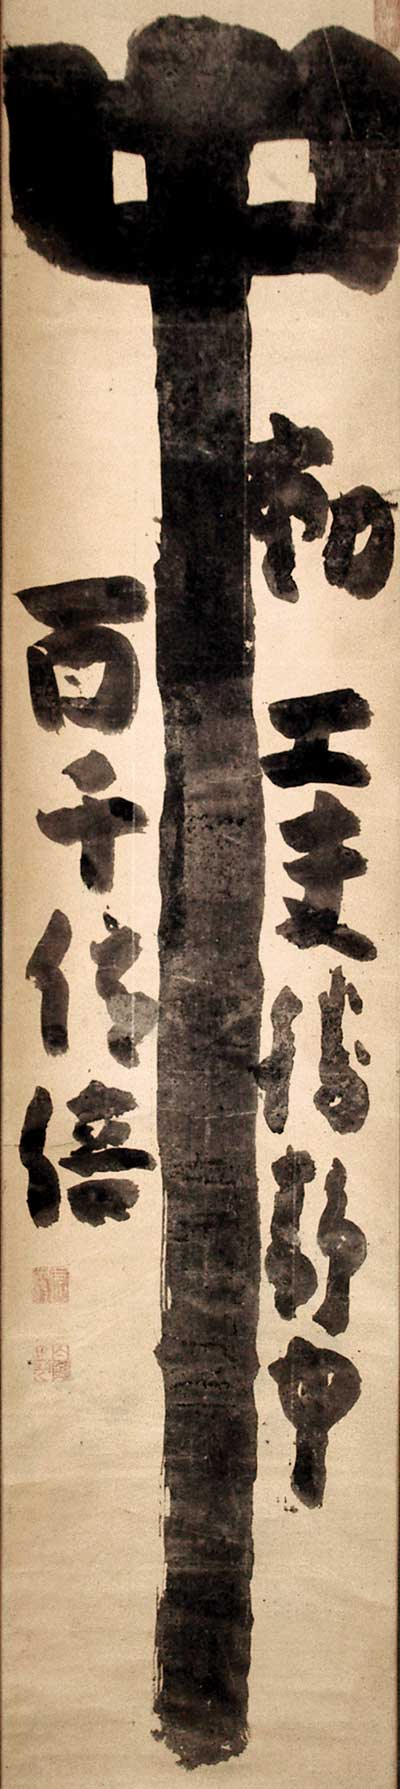 <p>Hakuin Ekaku, <em>Middle</em>. Ink on paper, 53.1 x 11.7 inches. Private Collection, Japan.